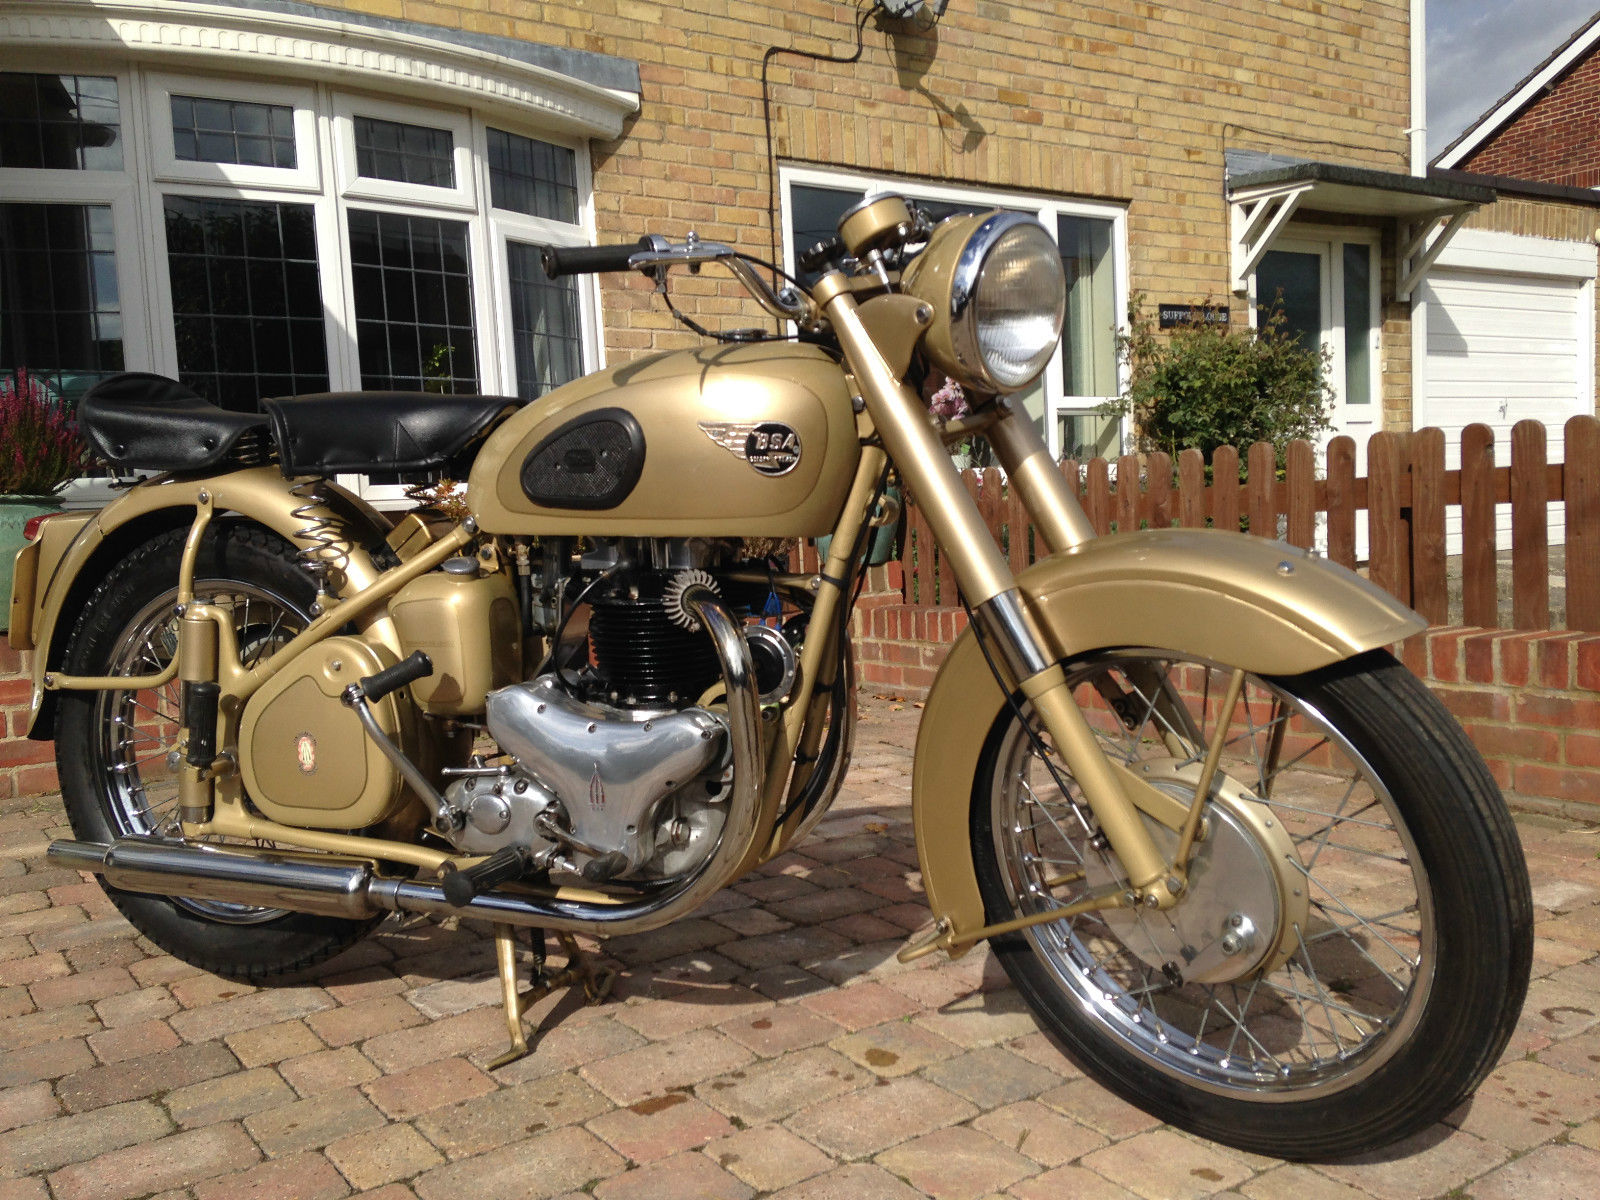 Restored Bsa A10 Gold Flash 1953 Photographs At Classic